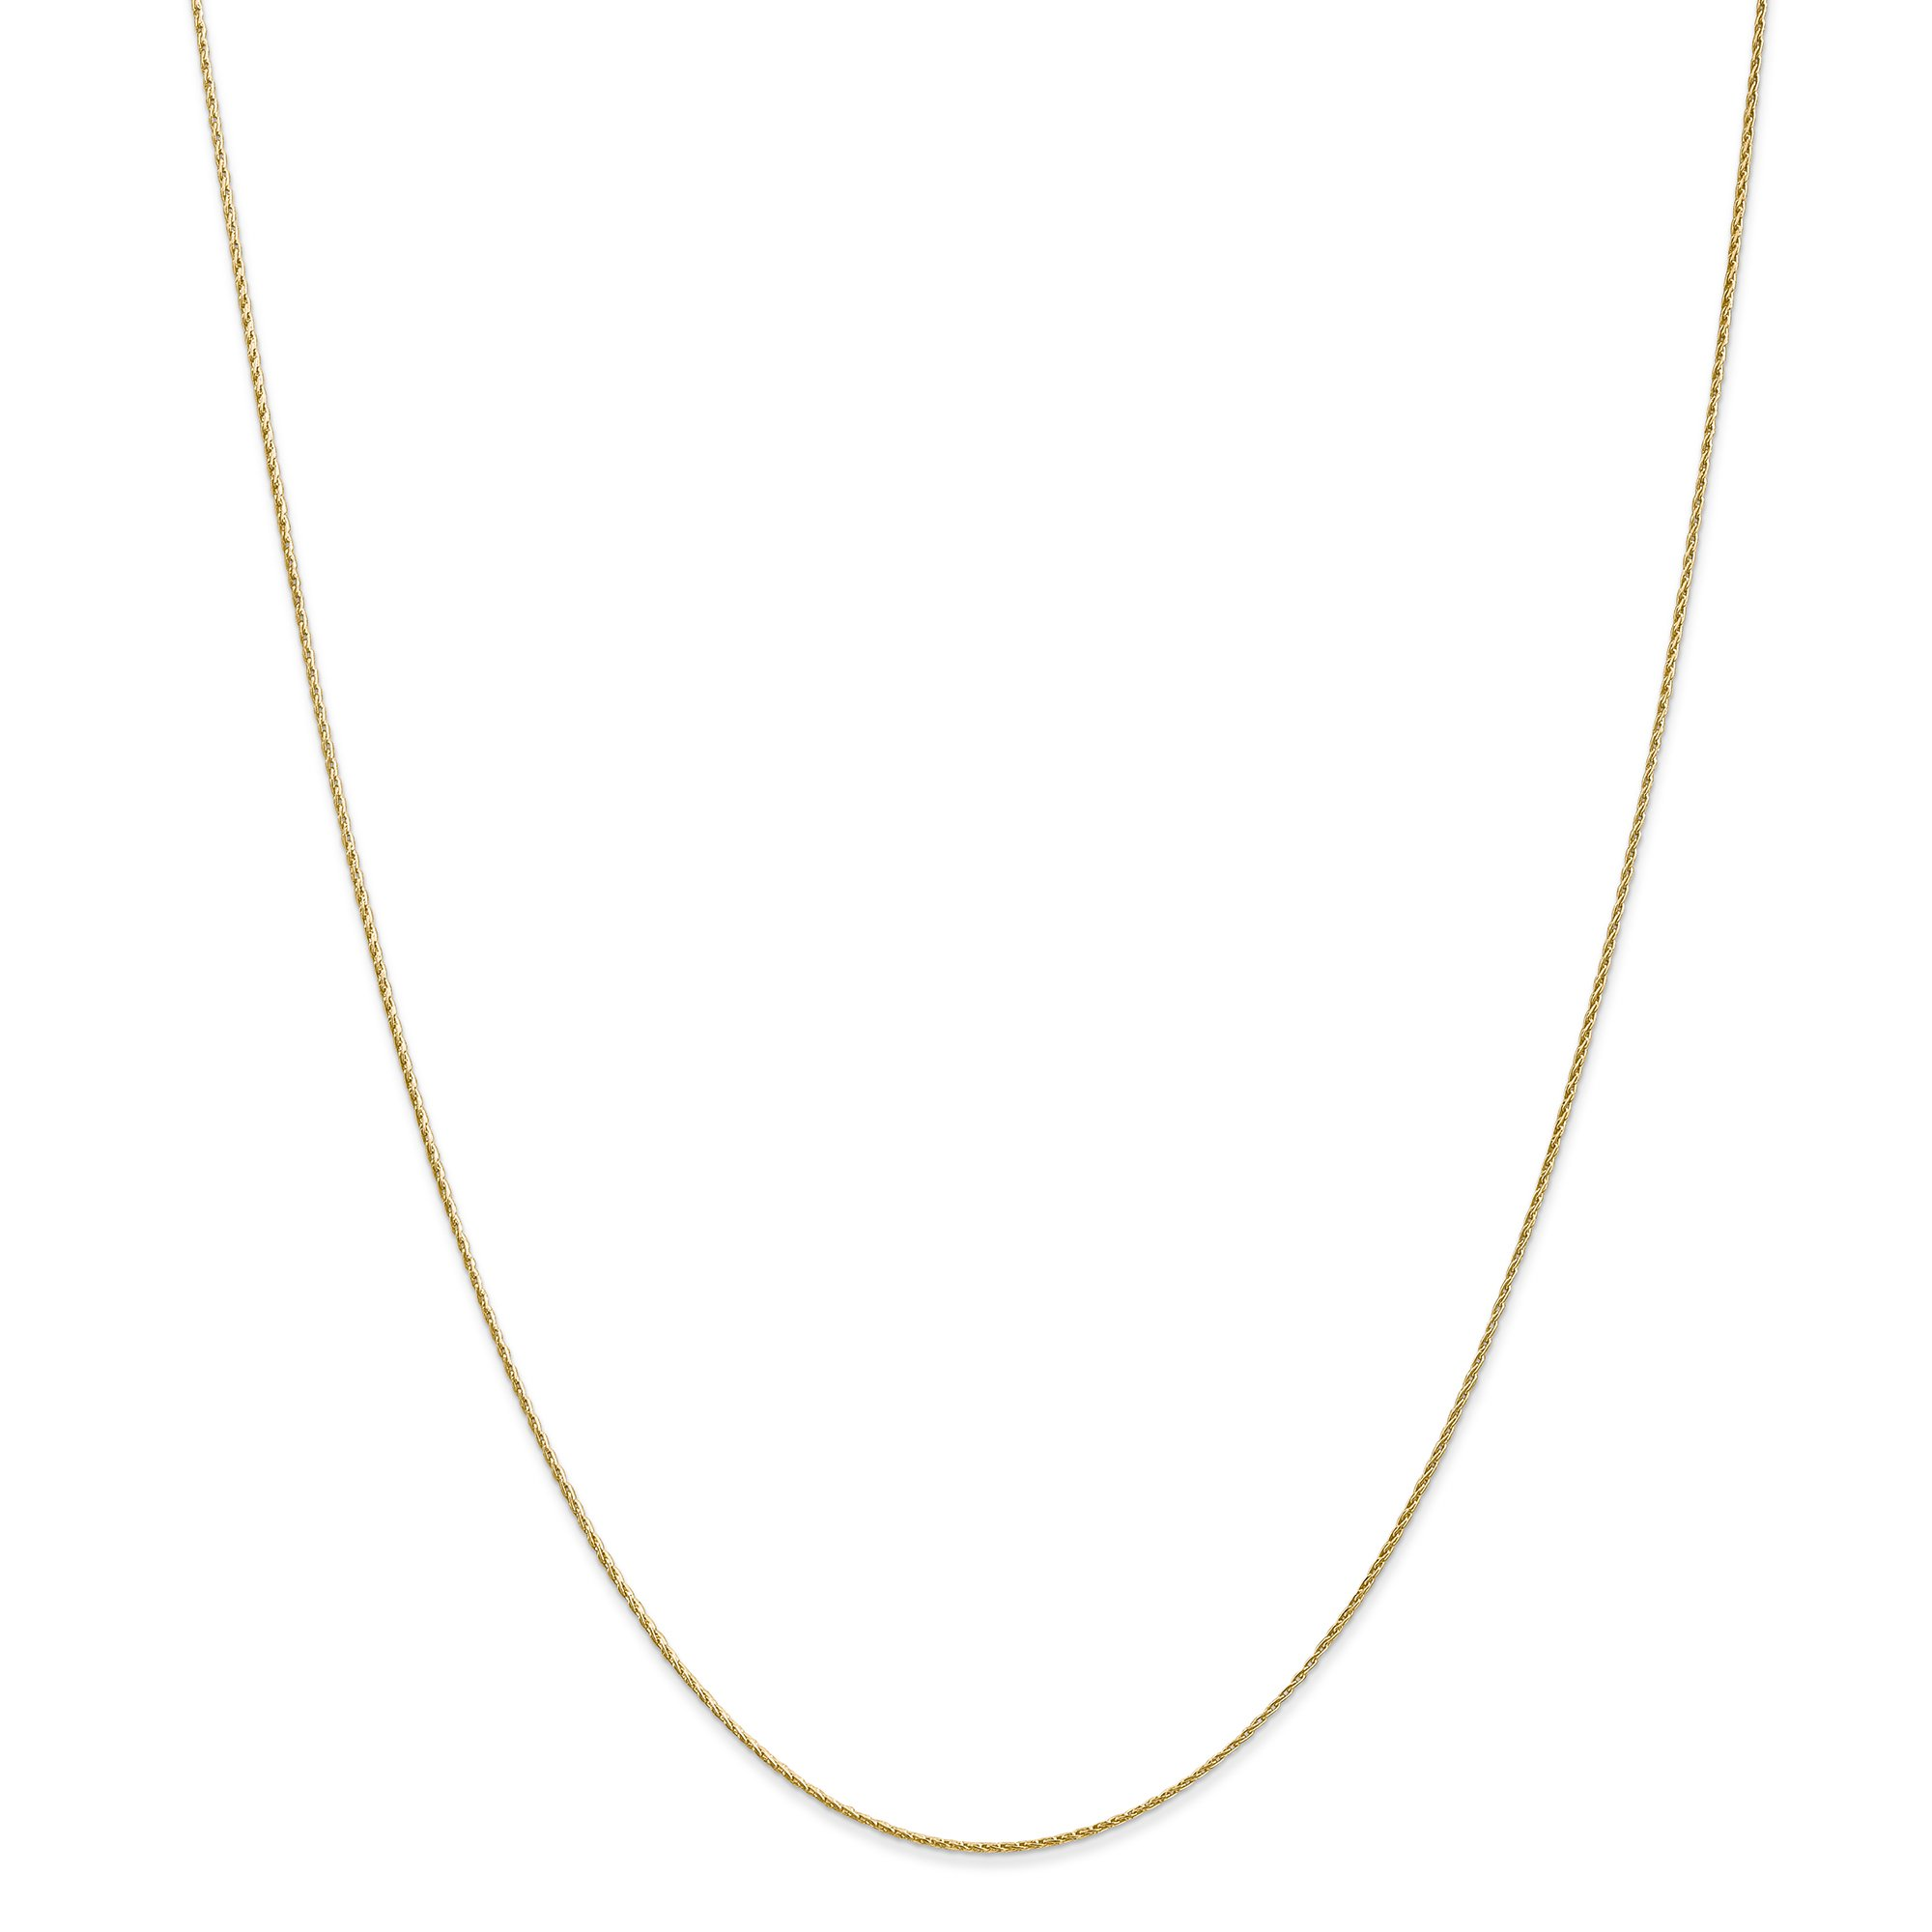 ICE CARATS 14k Yellow Gold .7mm Baby Parisian Link Wheat Chain Necklace 18 Inch Spiga Fine Jewelry Gift Set For Women Heart